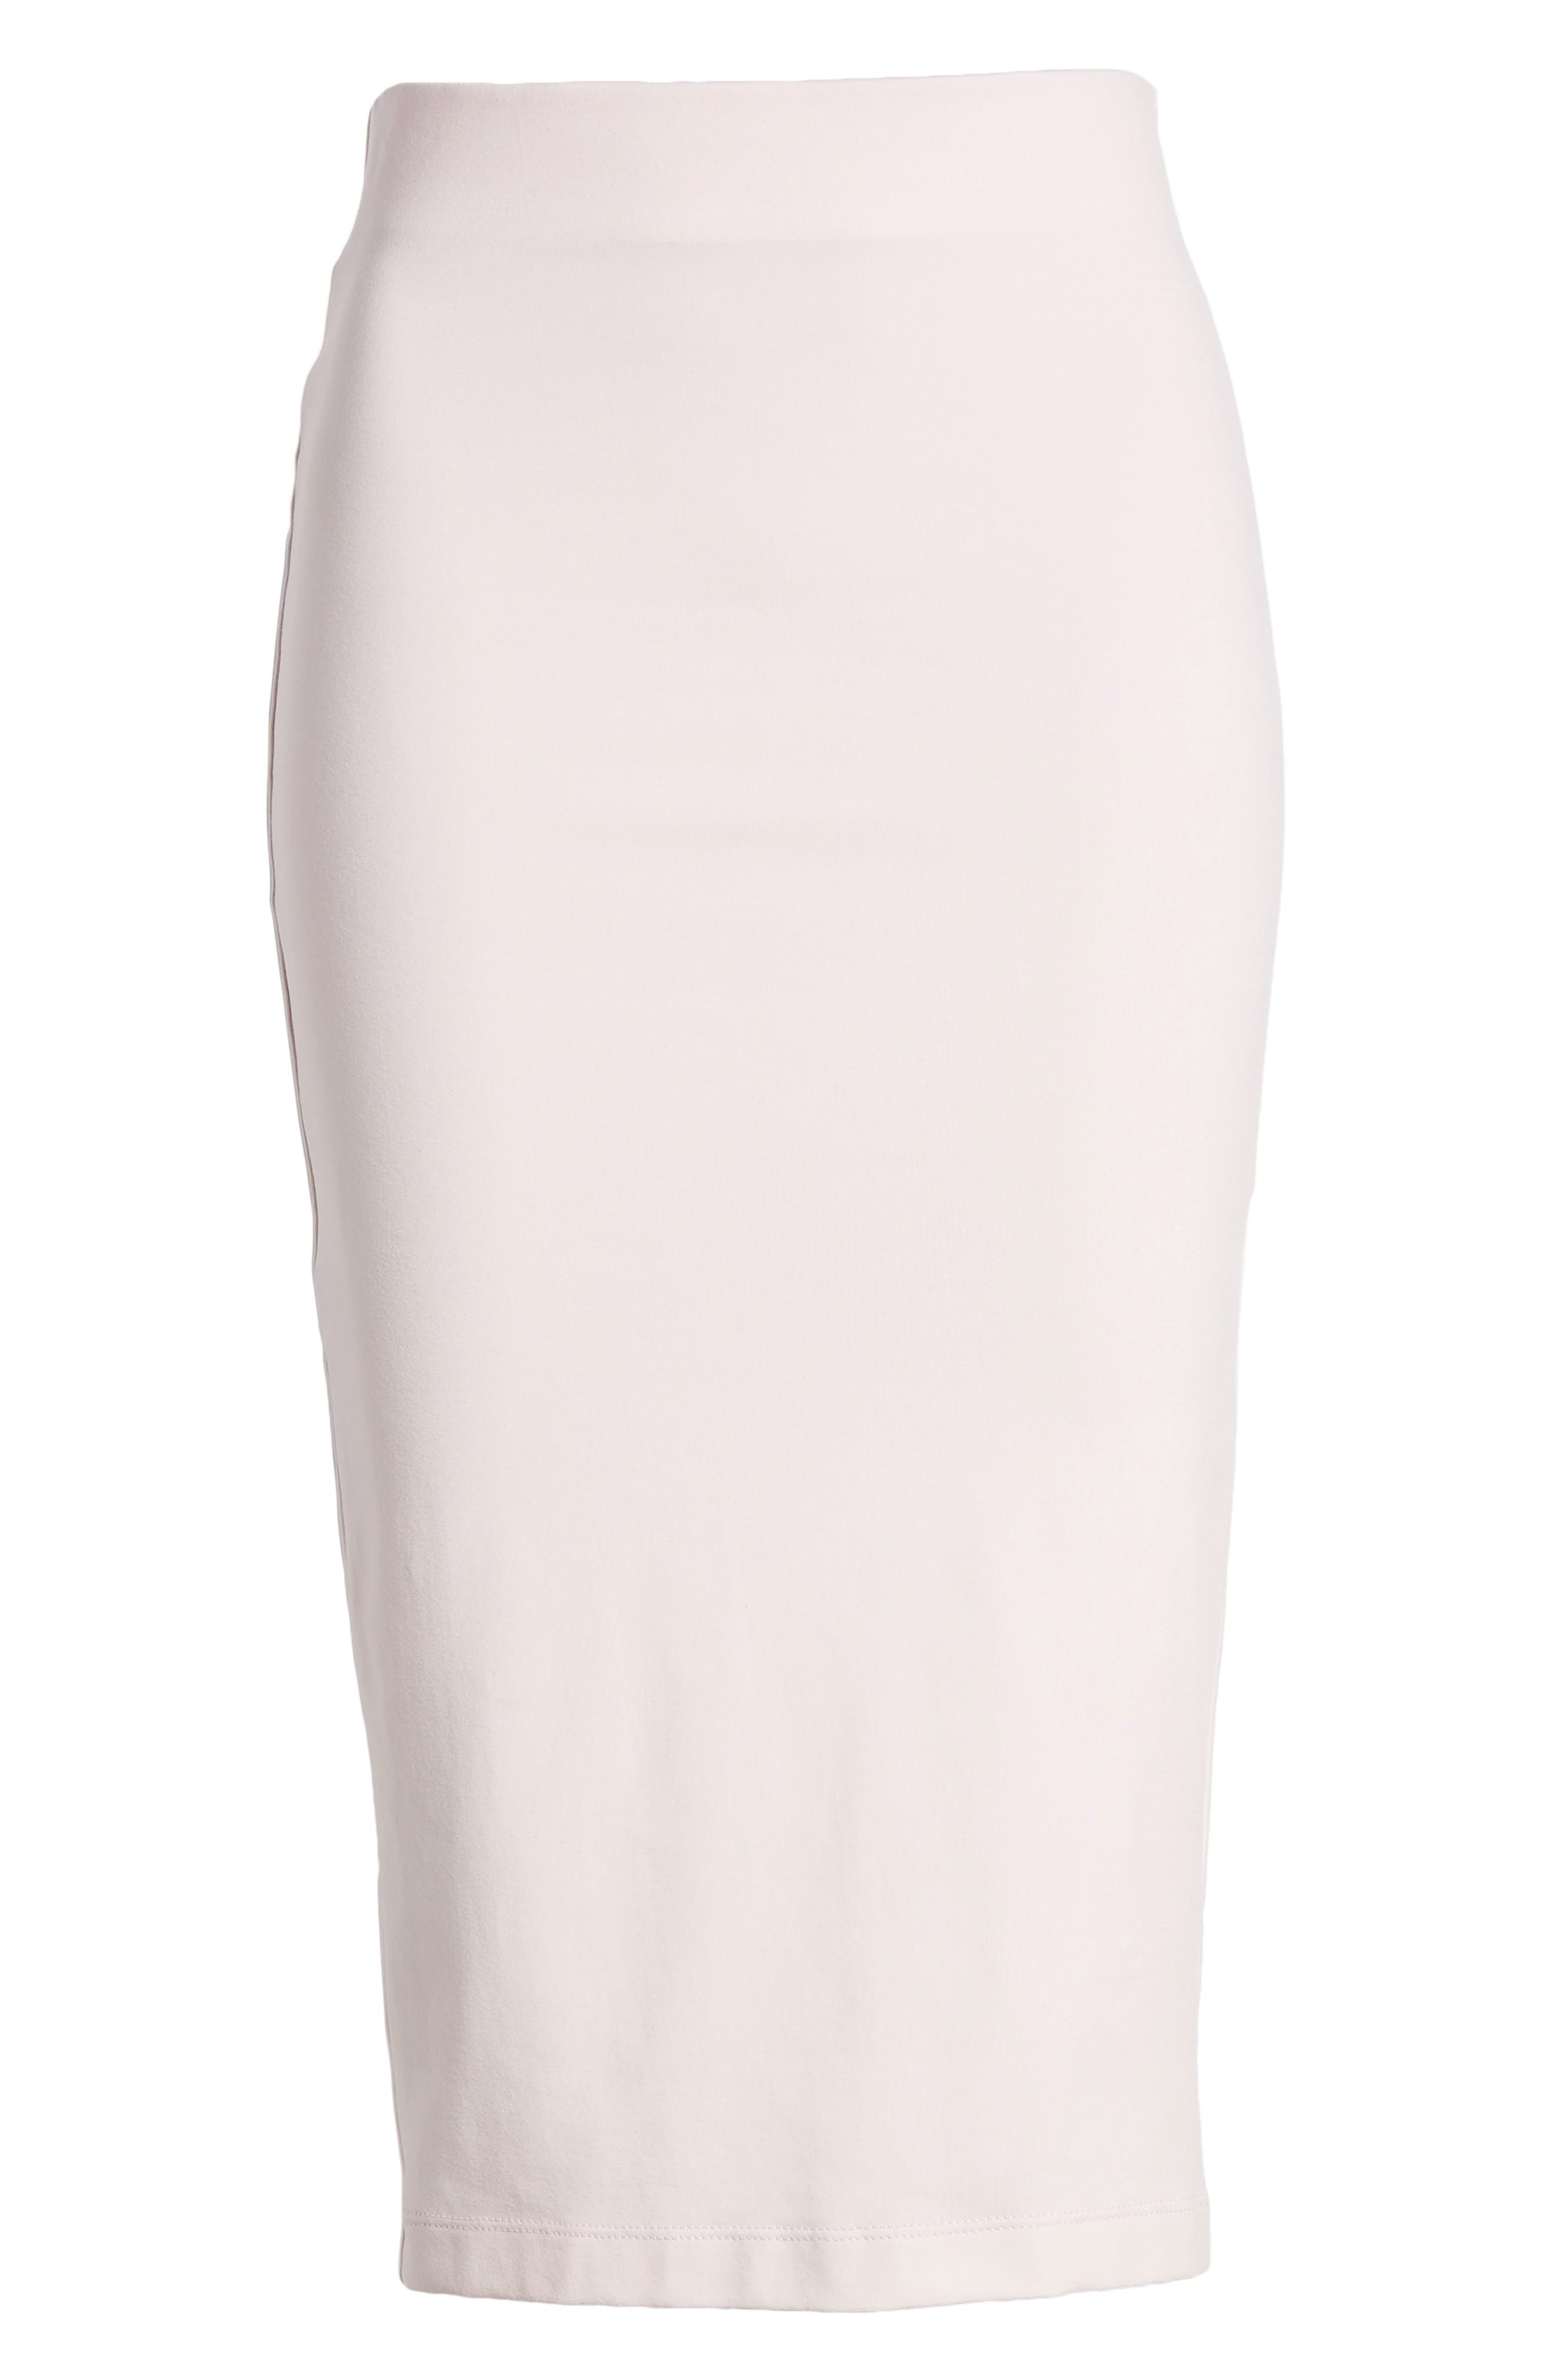 Tube High Rise Pencil Skirt,                             Alternate thumbnail 6, color,                             Soft Pink